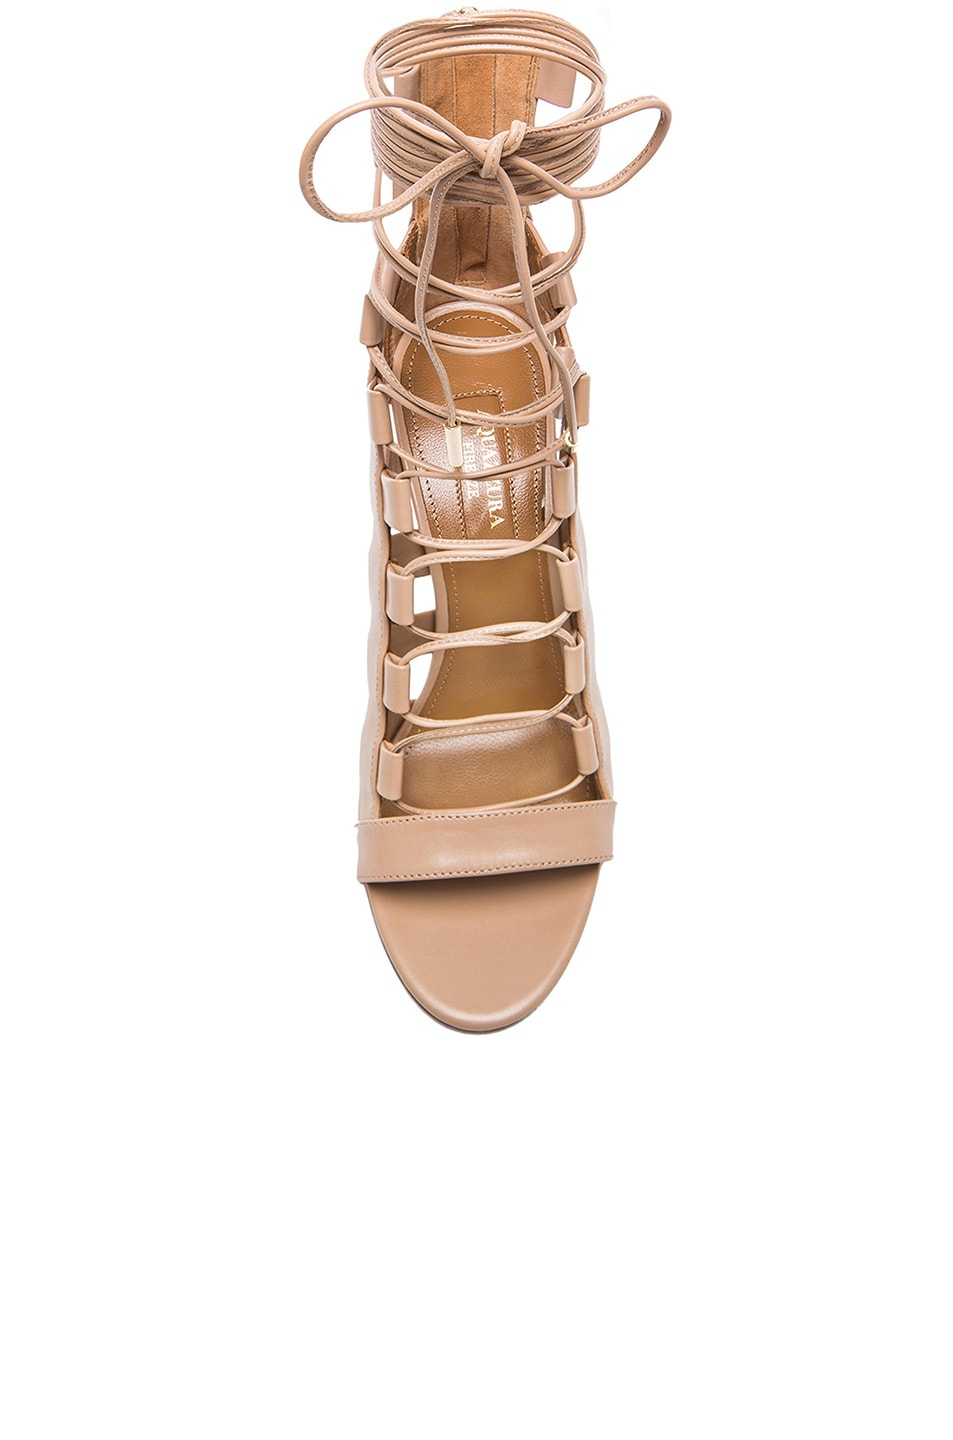 b3b73160b362d Image 4 of Aquazzura Amazon Leather Heels in Nude